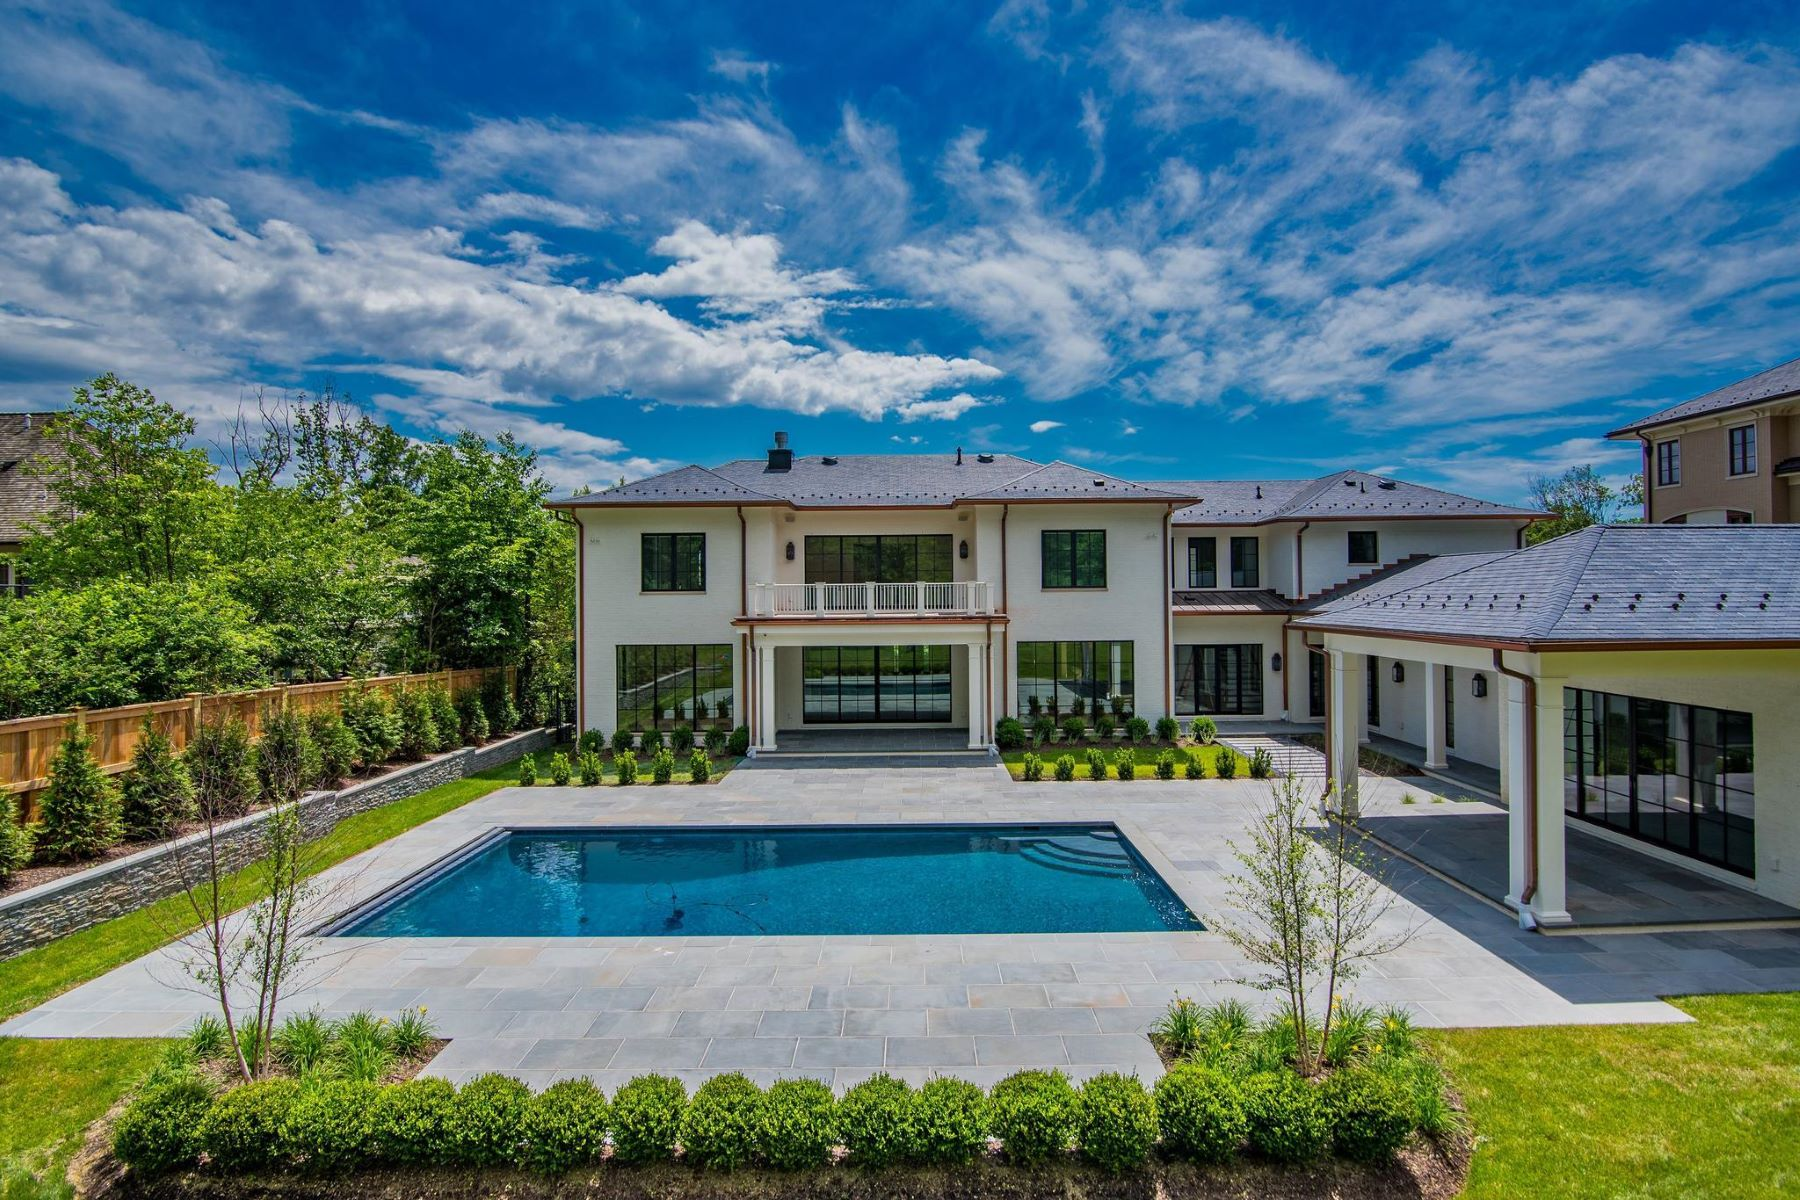 Single Family Home for Sale at 7205 Arrowood Rd 7205 Arrowood Rd Bethesda, Maryland 20817 United States